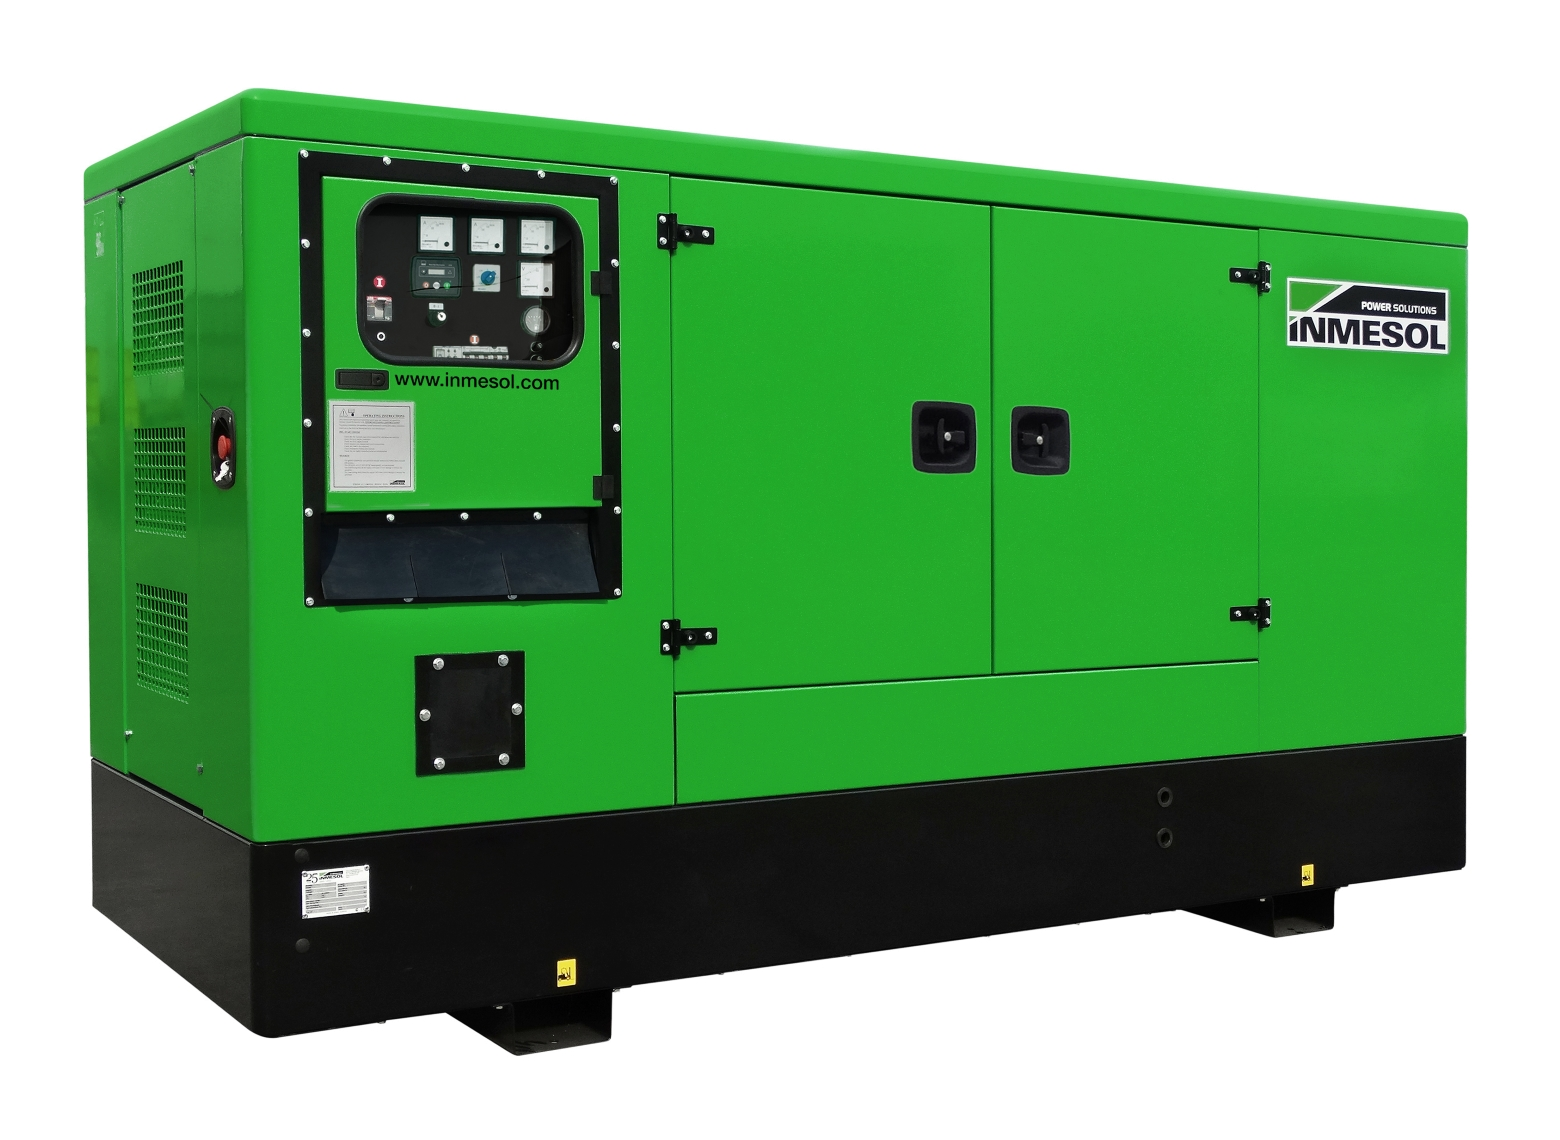 Generator with manual control panel.IV-165 - VOLVO - TAD731GE - 1.500 R.P.M. | 50 Hz